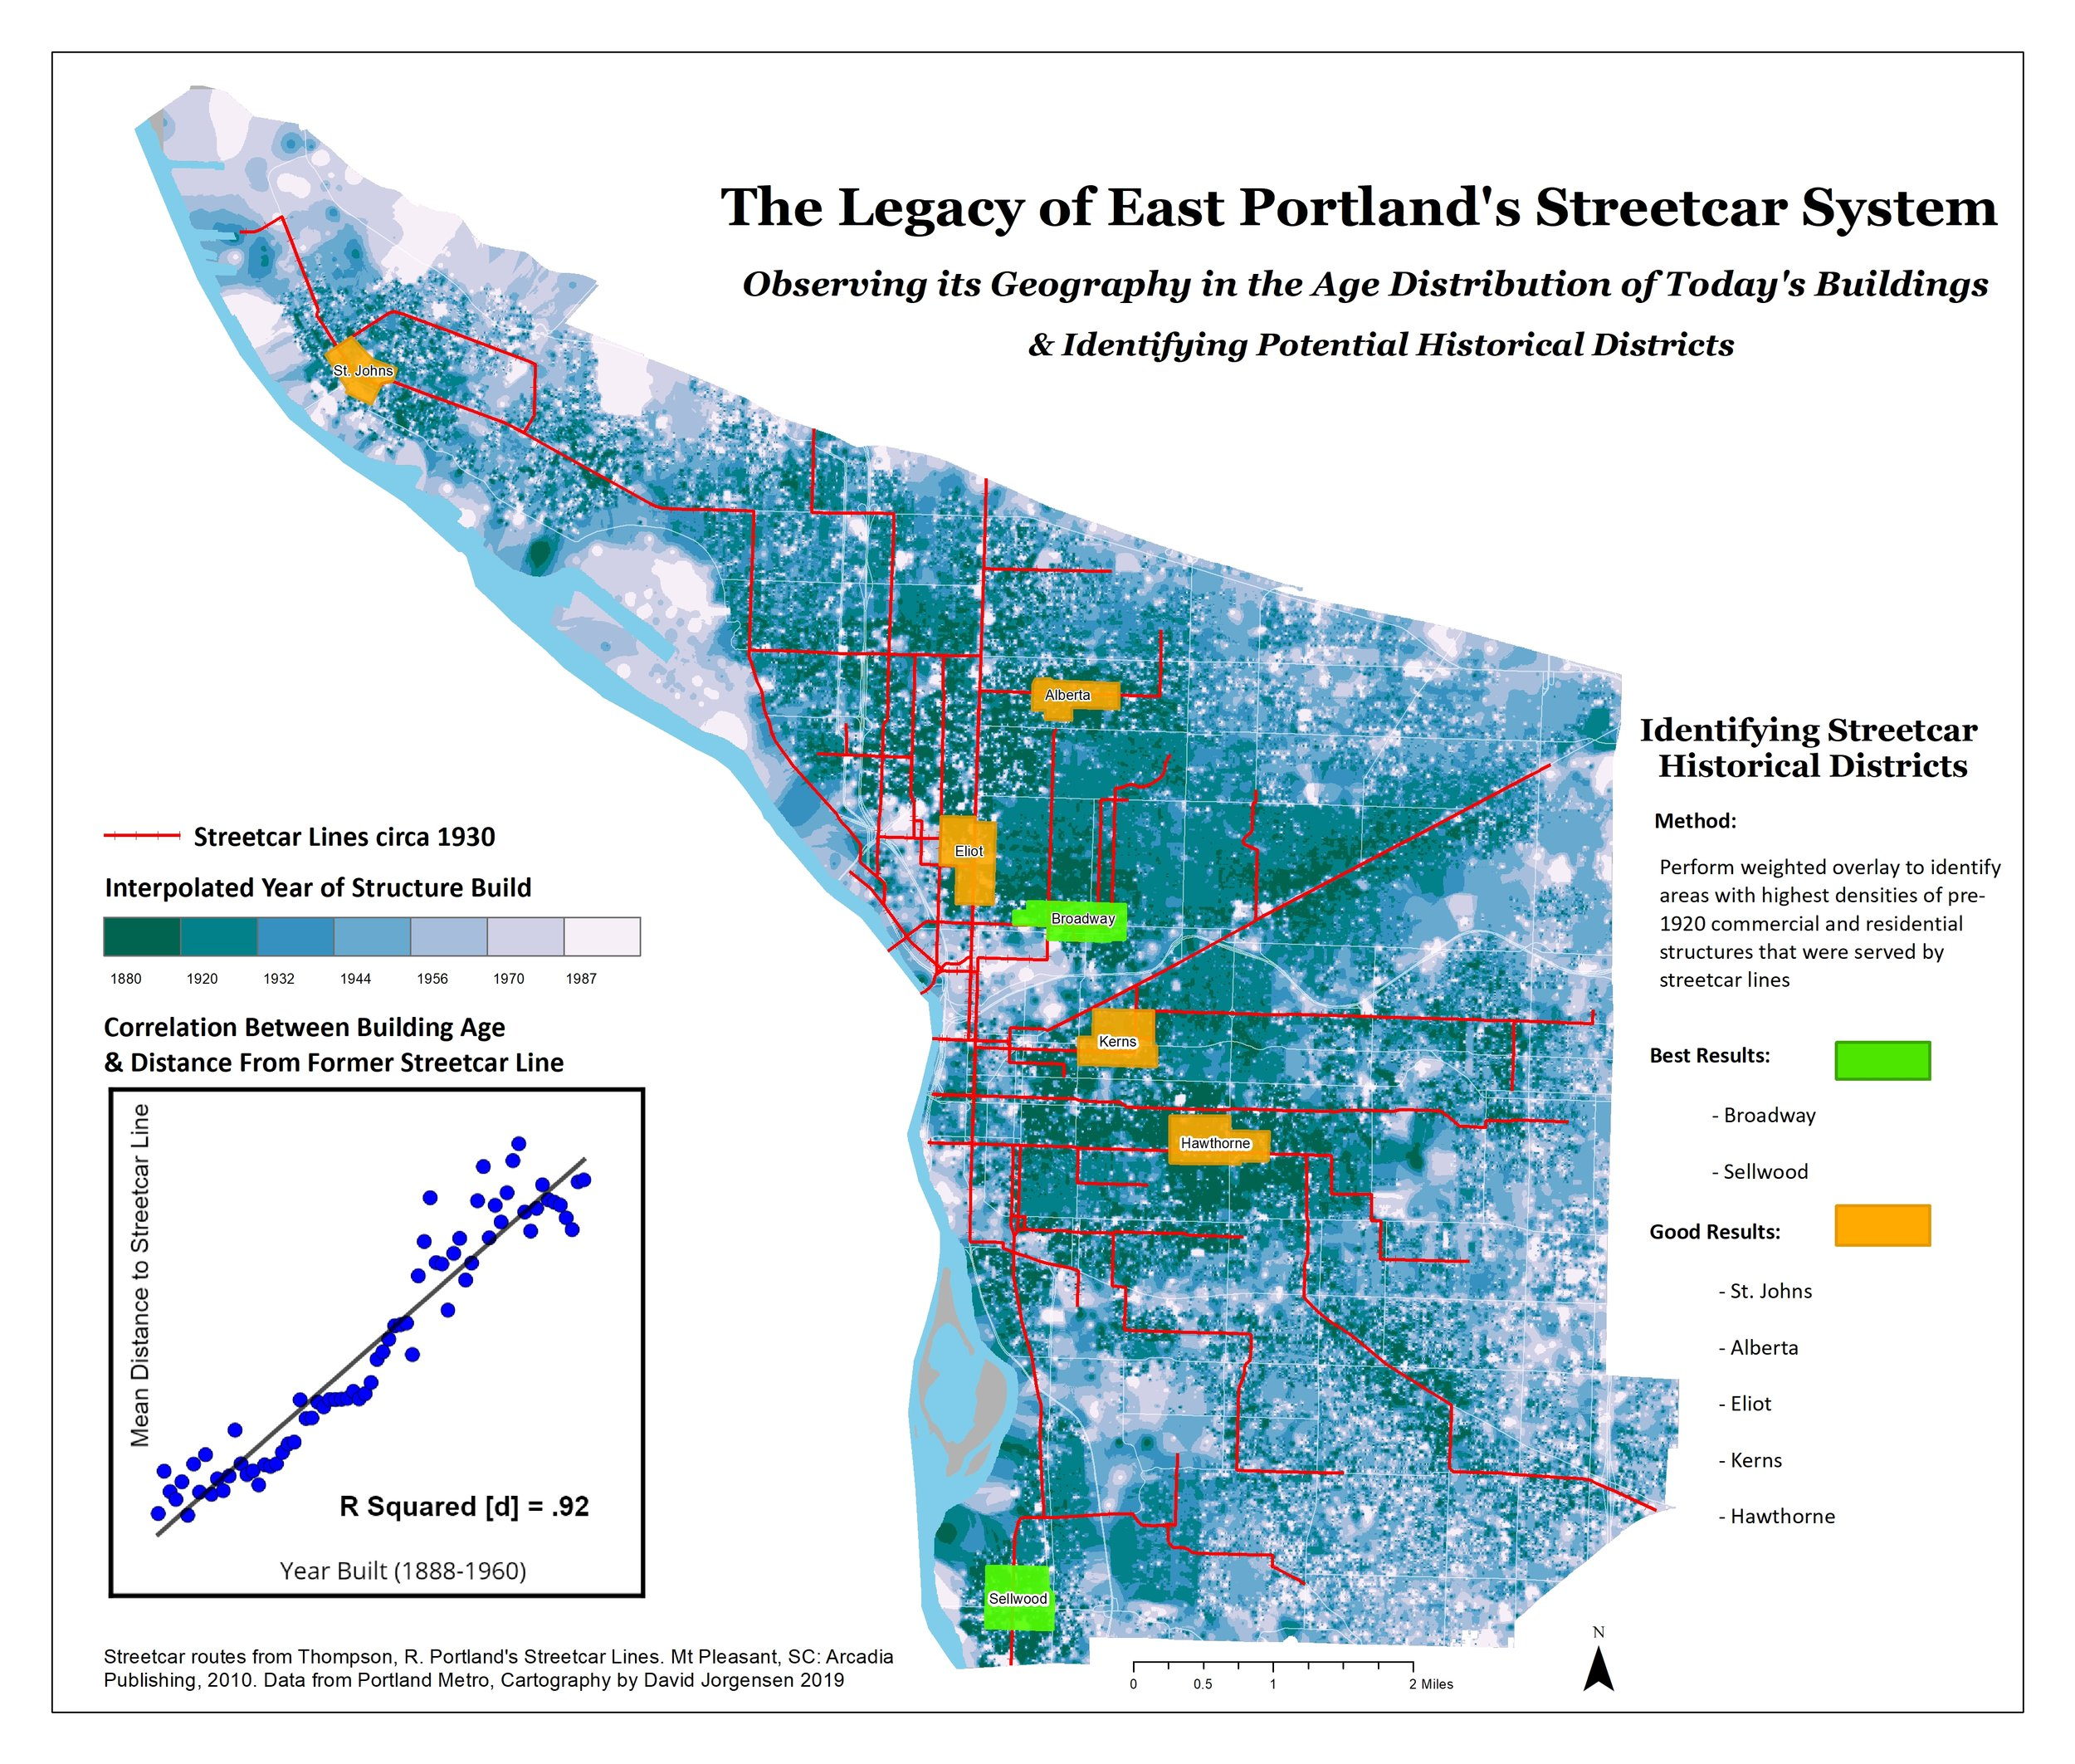 Portland's Streetcar Legacy - Examining how long-dismantled streetcar routes are still reflected in the age of East Portland's current building stock, and identifying potential Streetcar Historical Districts